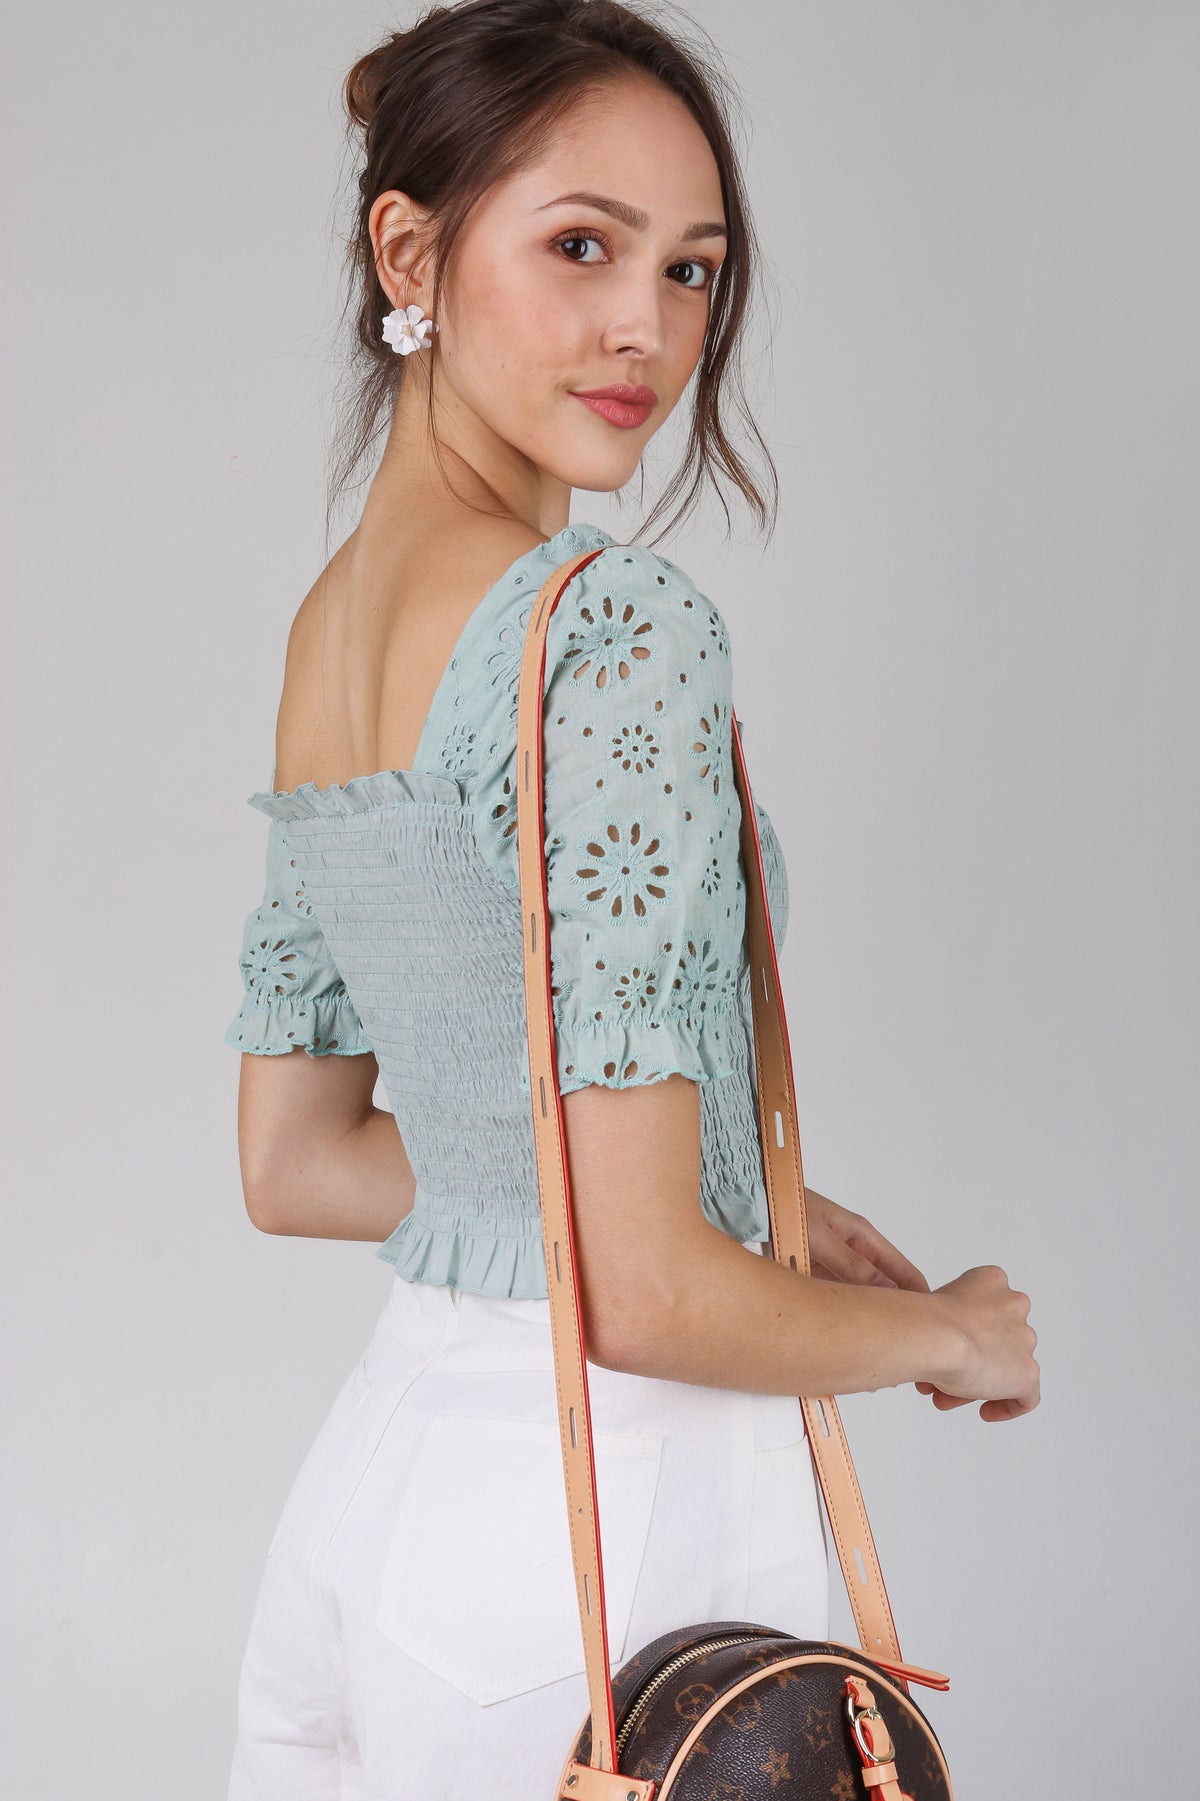 Sunburst Eyelet Top in Mint